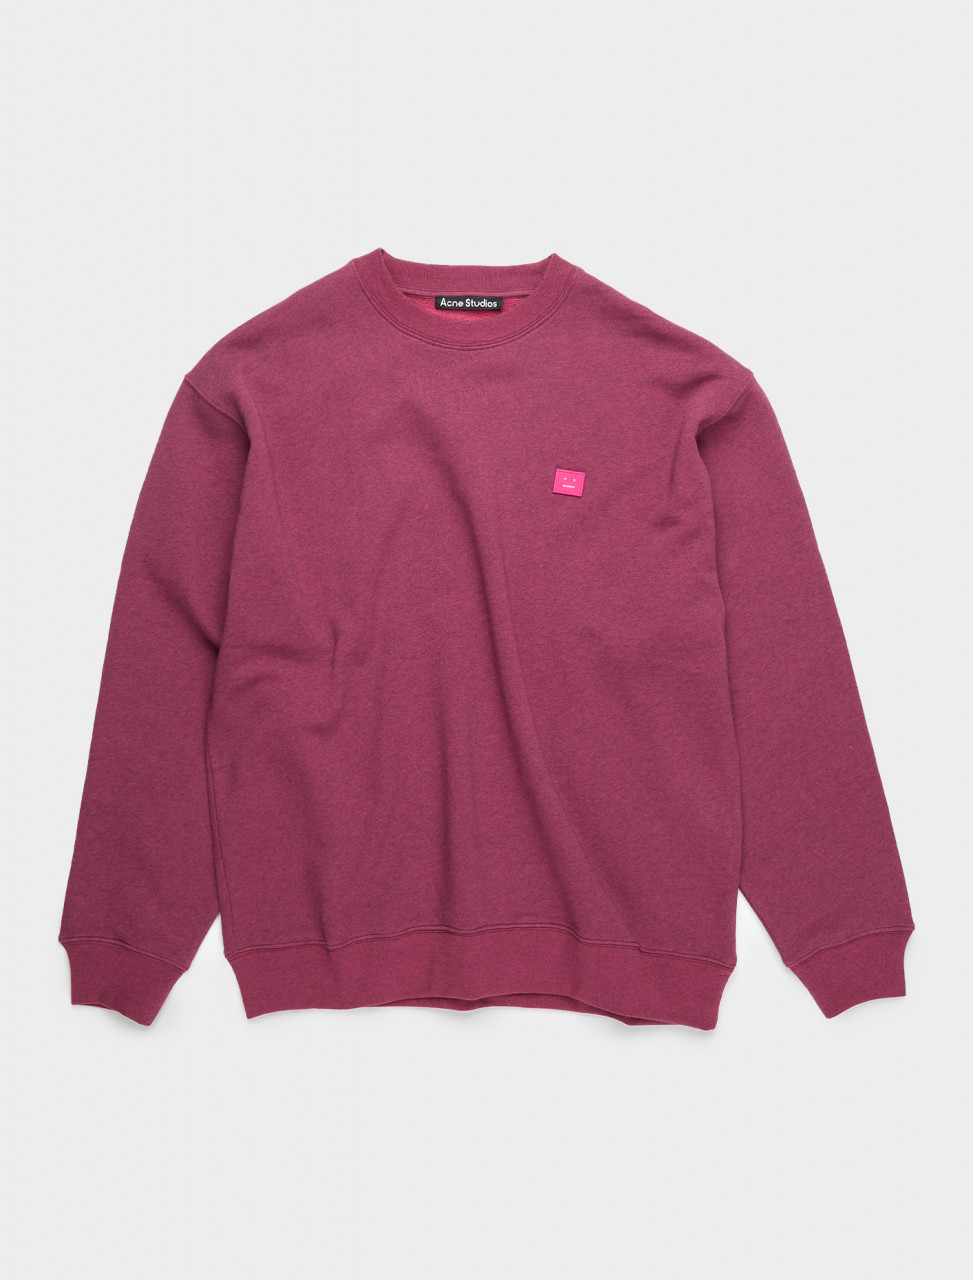 CI0054-415 ACNE STUDIOS SWEATER PINK